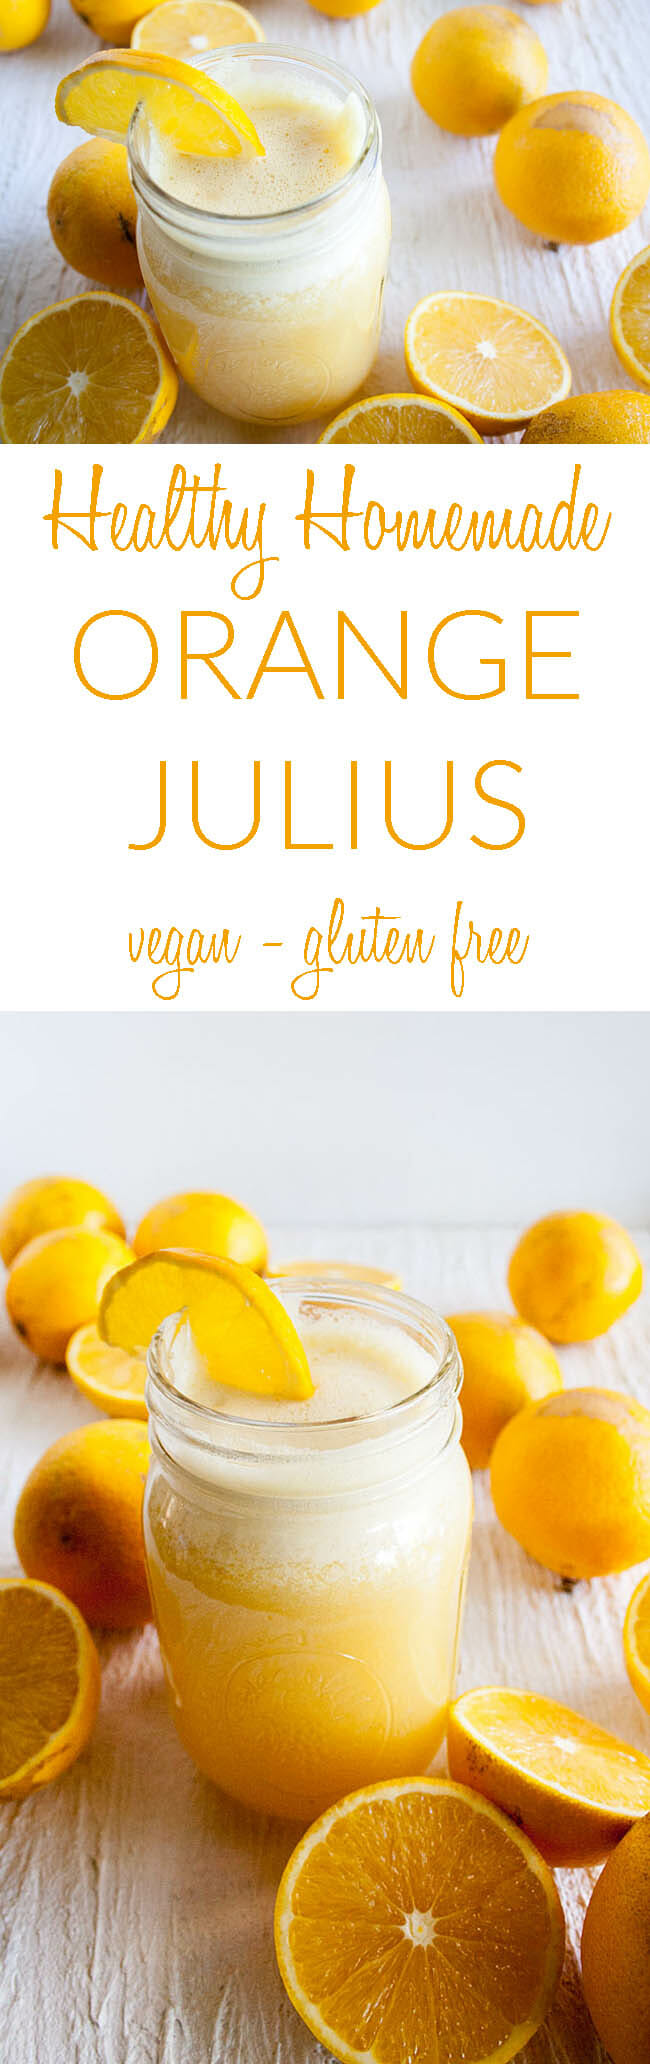 Healthy Homemade Orange Julius collage photo with text.